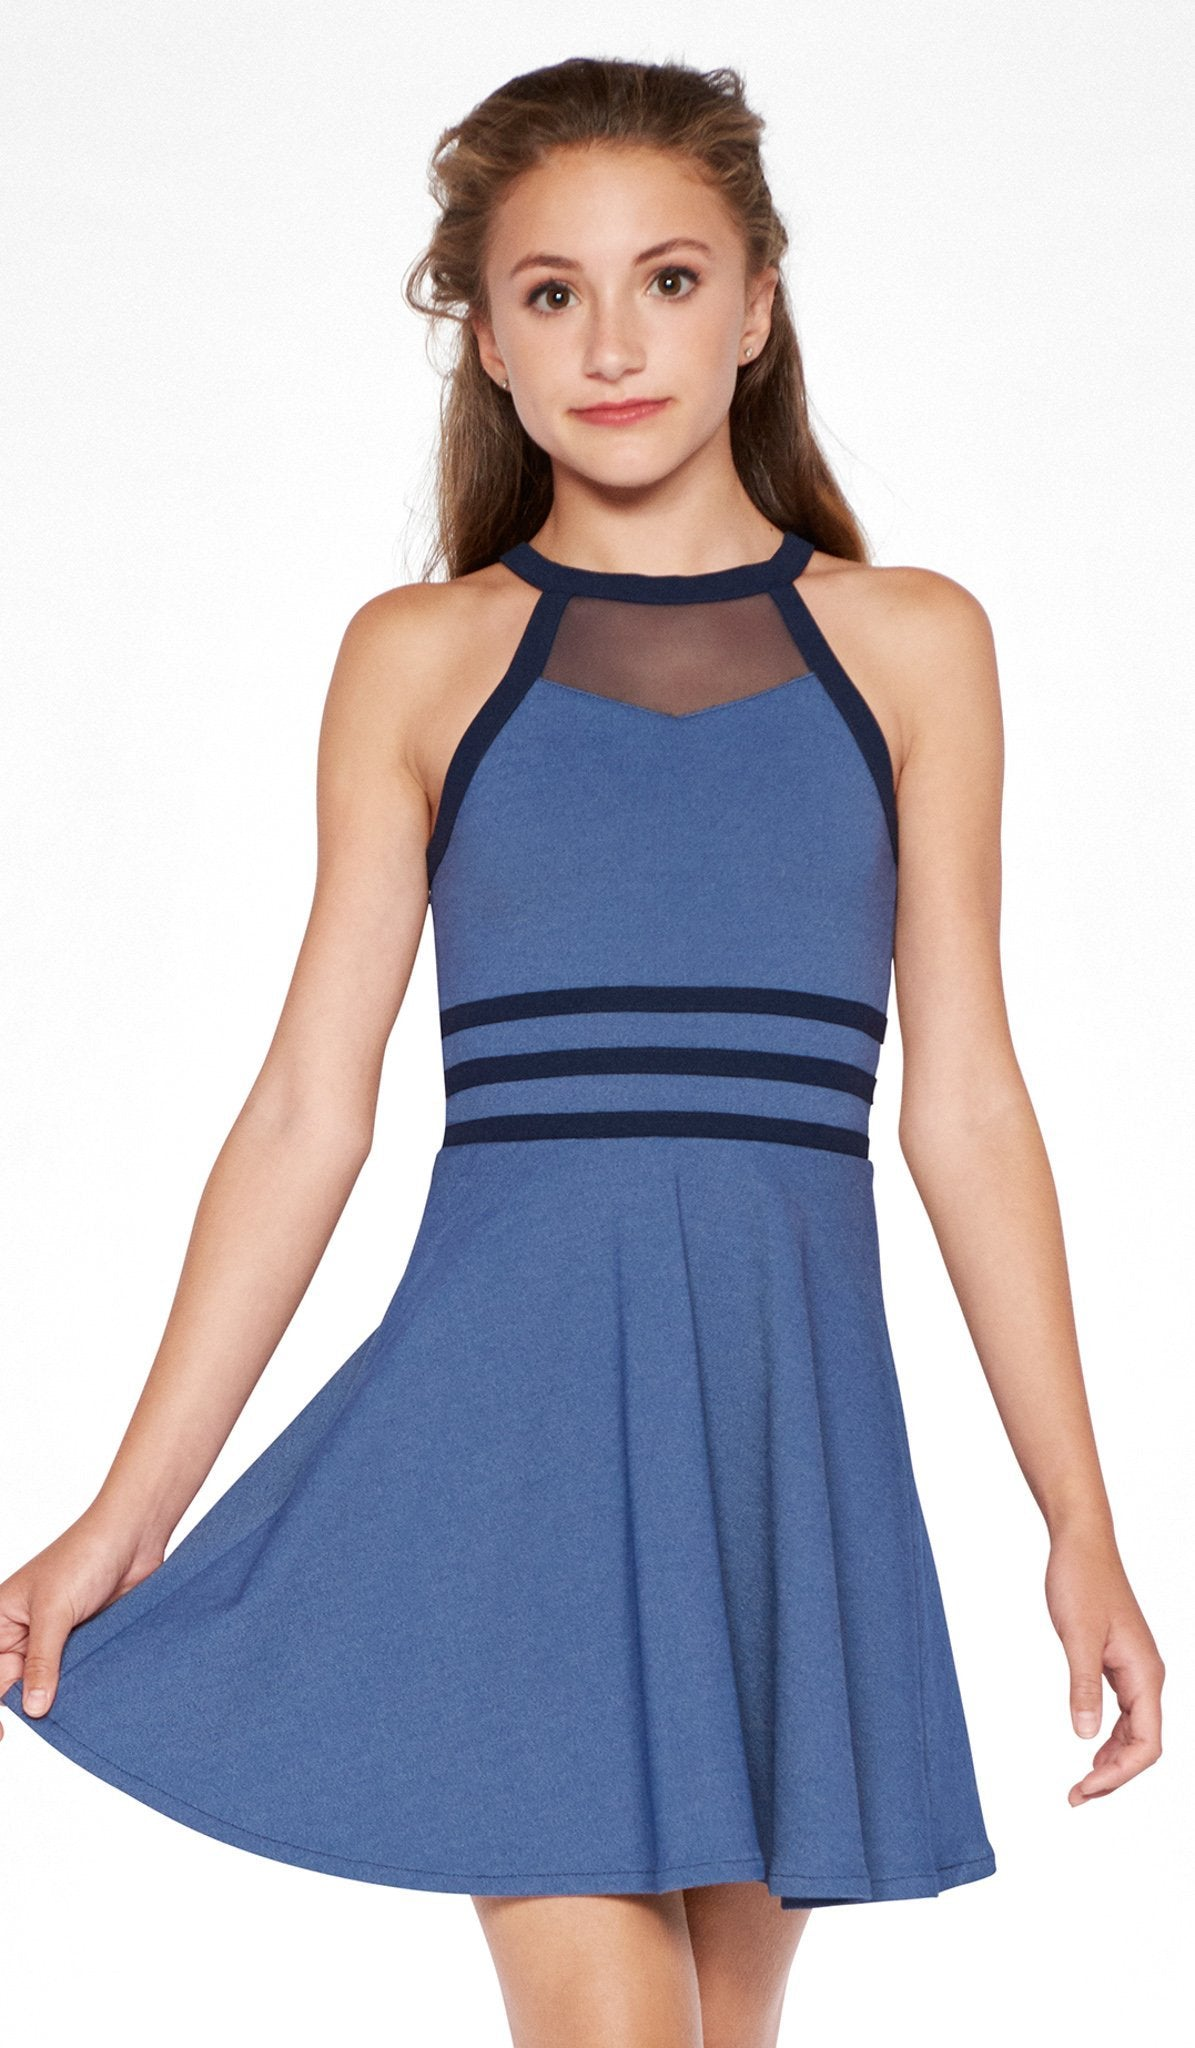 Sally Miller denim combo skater dress